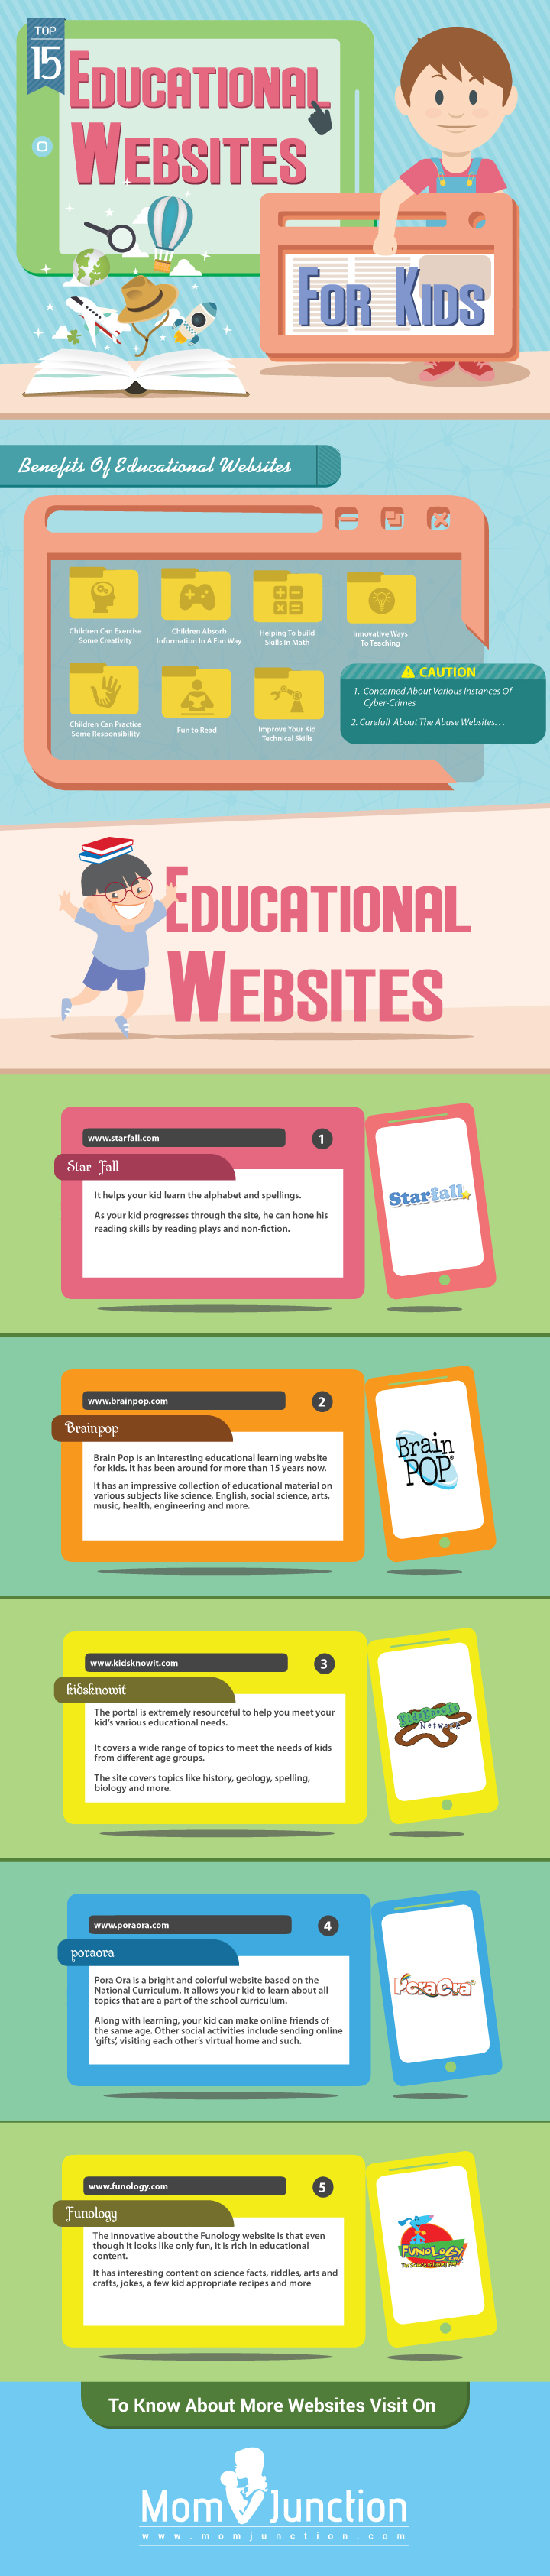 Top 15 Educational Websites For Kids